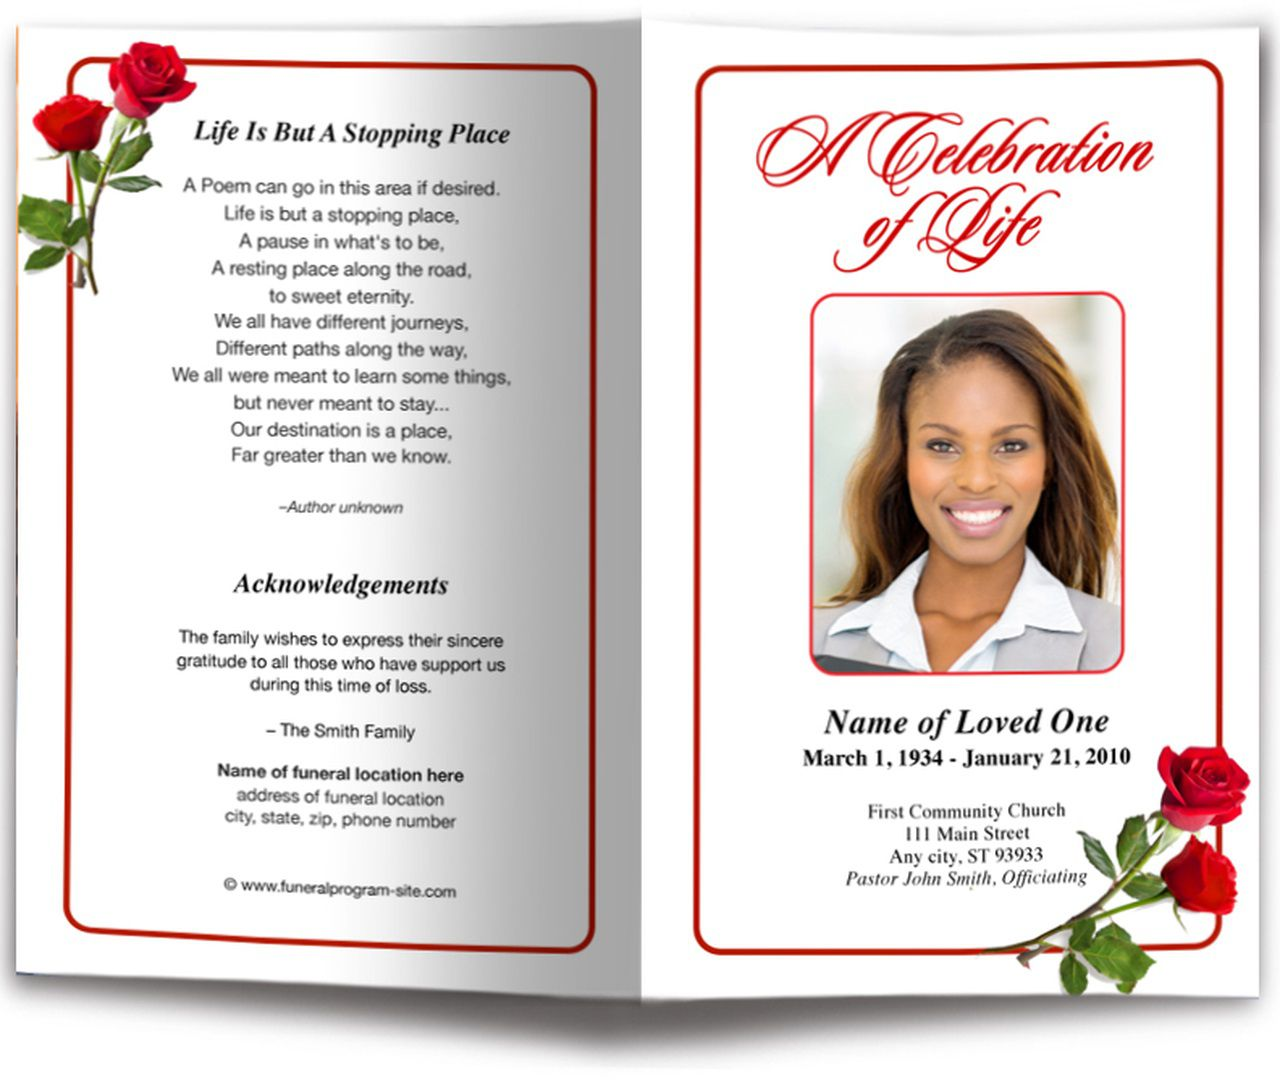 007 Wonderful Free Funeral Program Template Download Picture  Simple Editable Microsoft WordFull